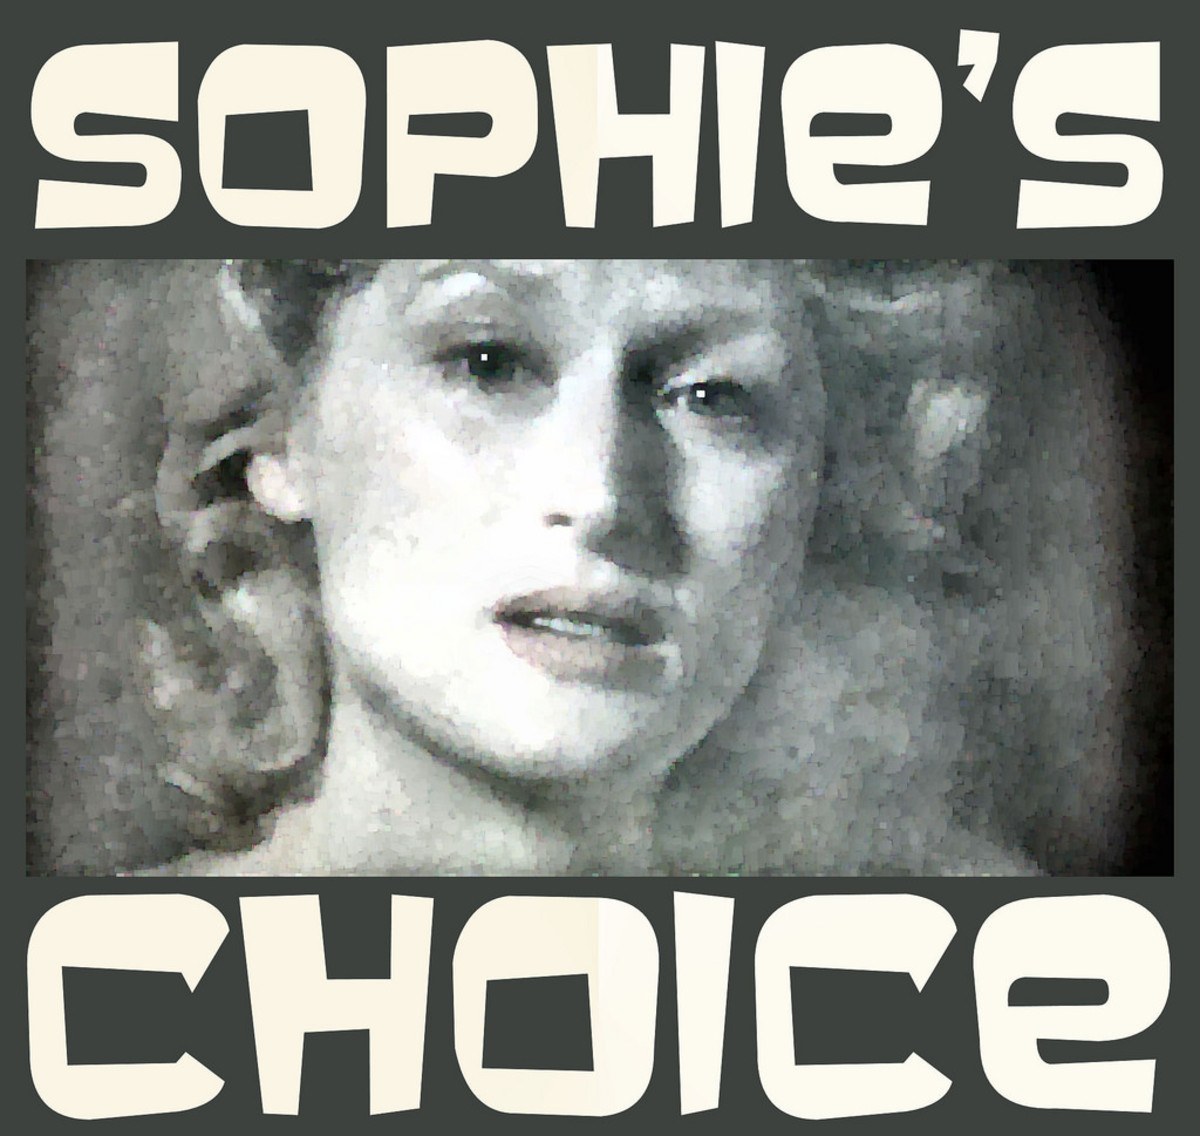 William Styron's novel Sophie's Choice became a film in 1982, starring Meryl Streep.